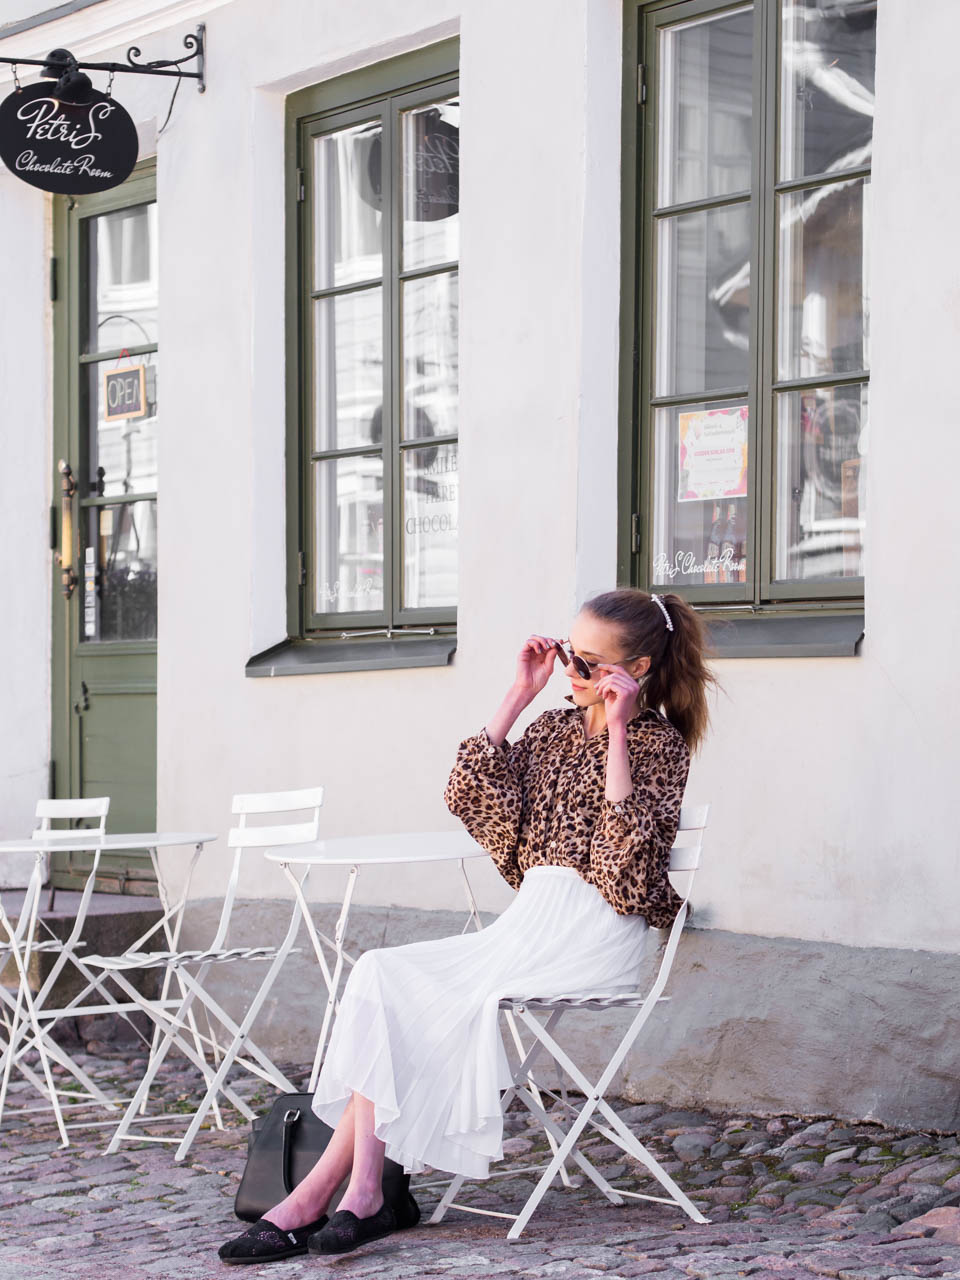 porvoo-cafes-restaurants-shops-fashion-blogger-summer-outfit